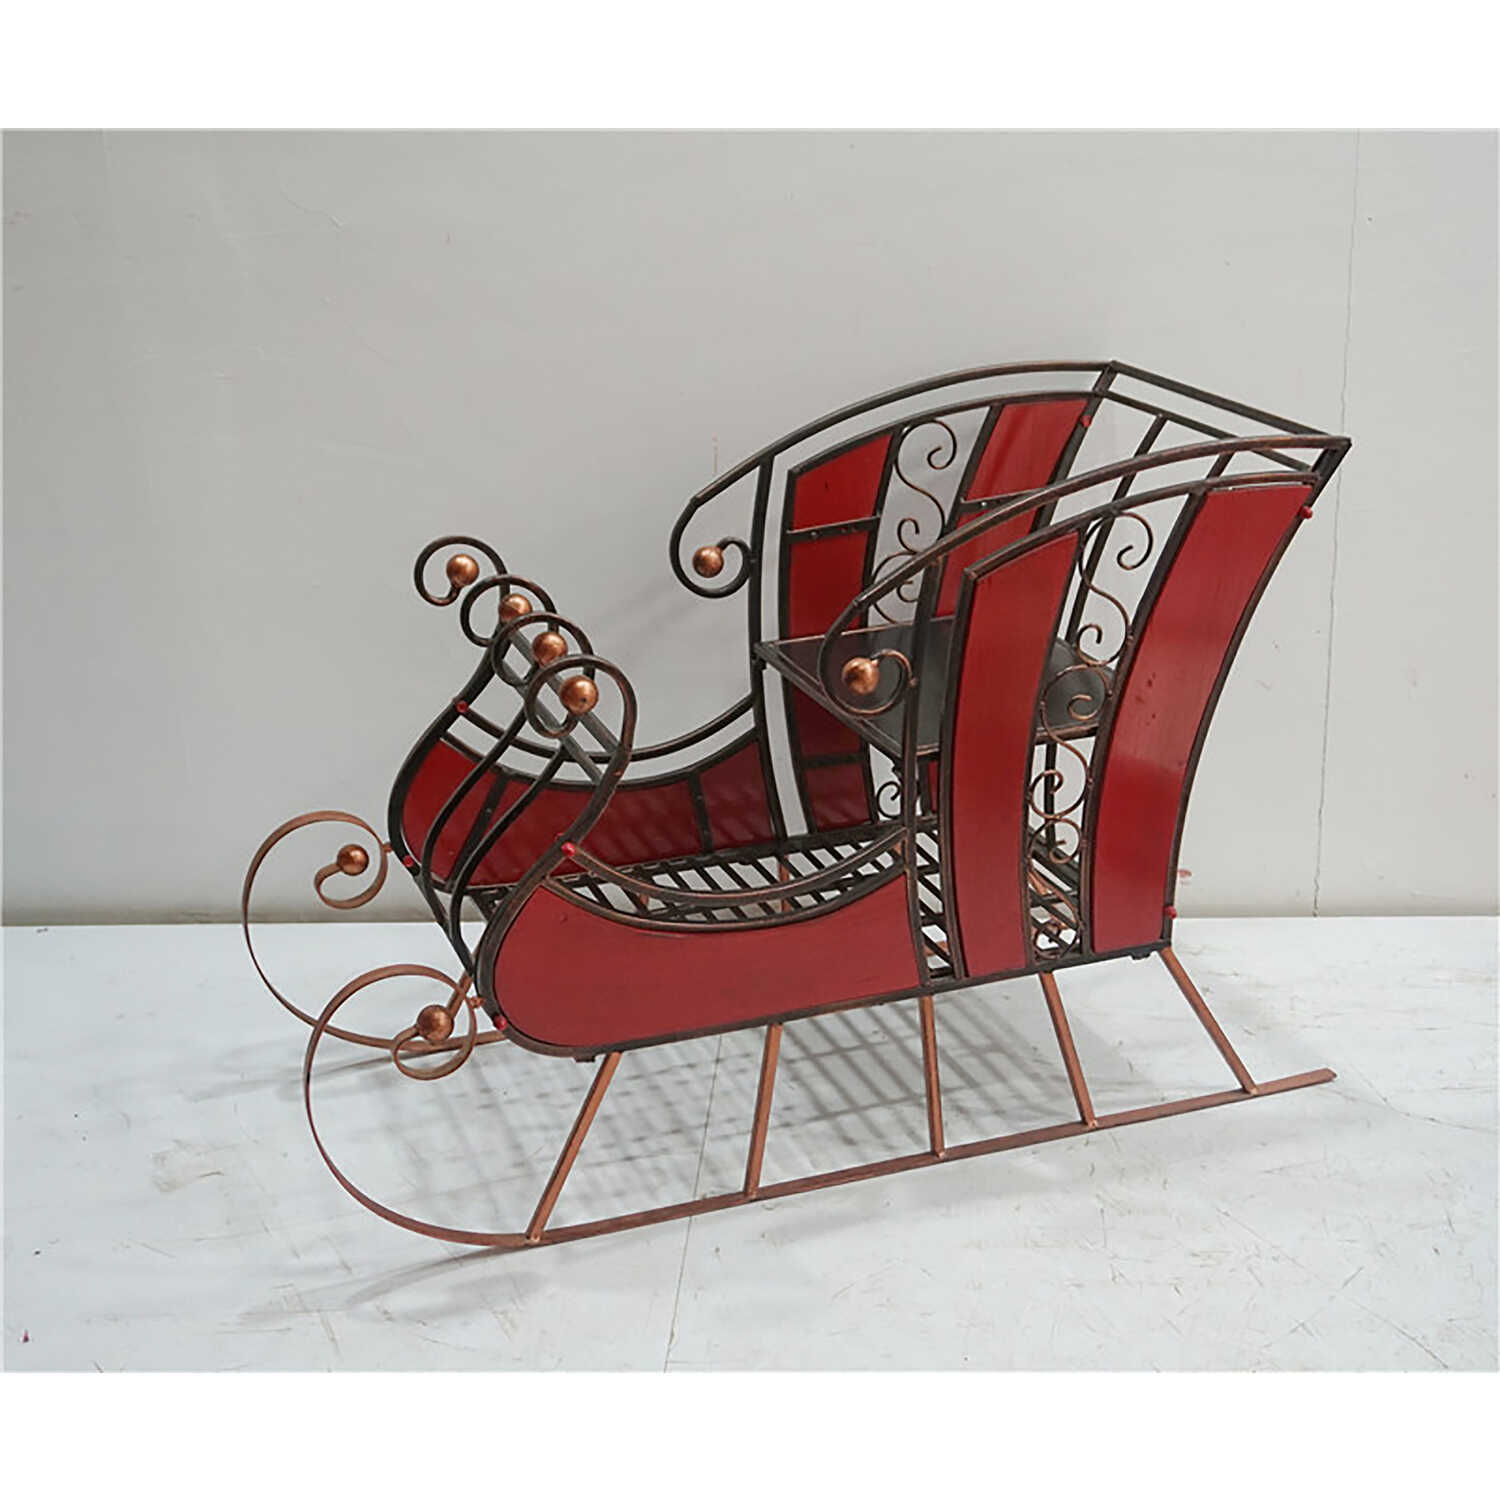 Sunset Vista  Sleigh  Christmas Decoration  Christmas Sleigh  Metal  Red  1 pk